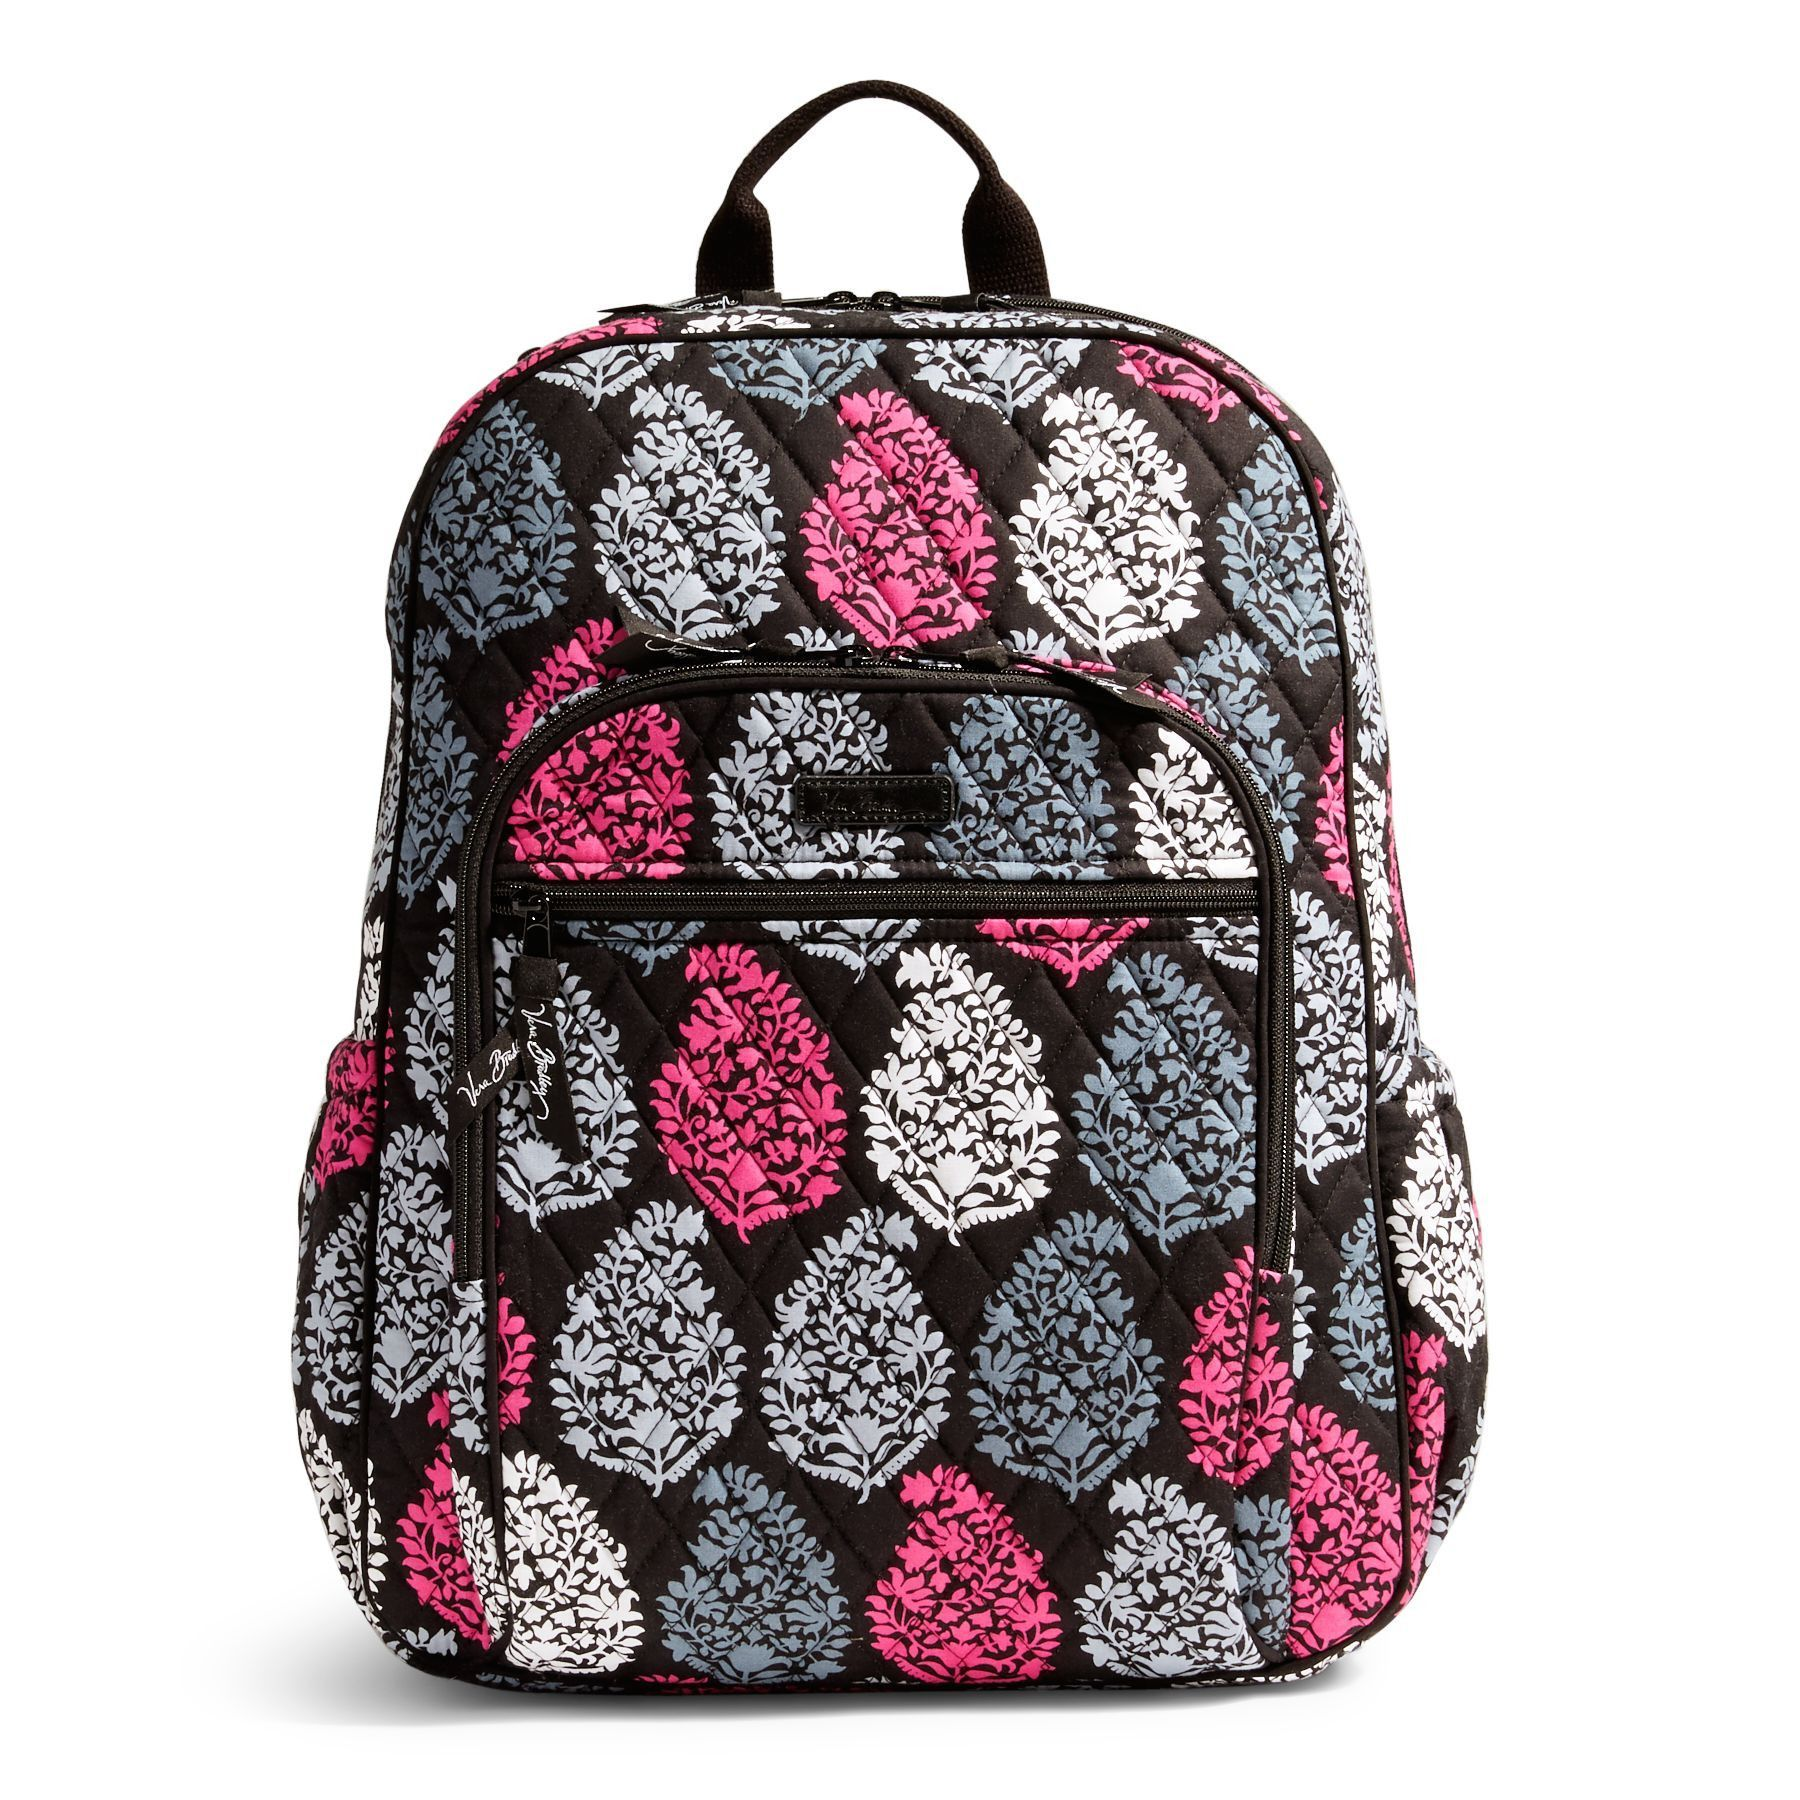 7acf124408c0 Campus Tech Backpack